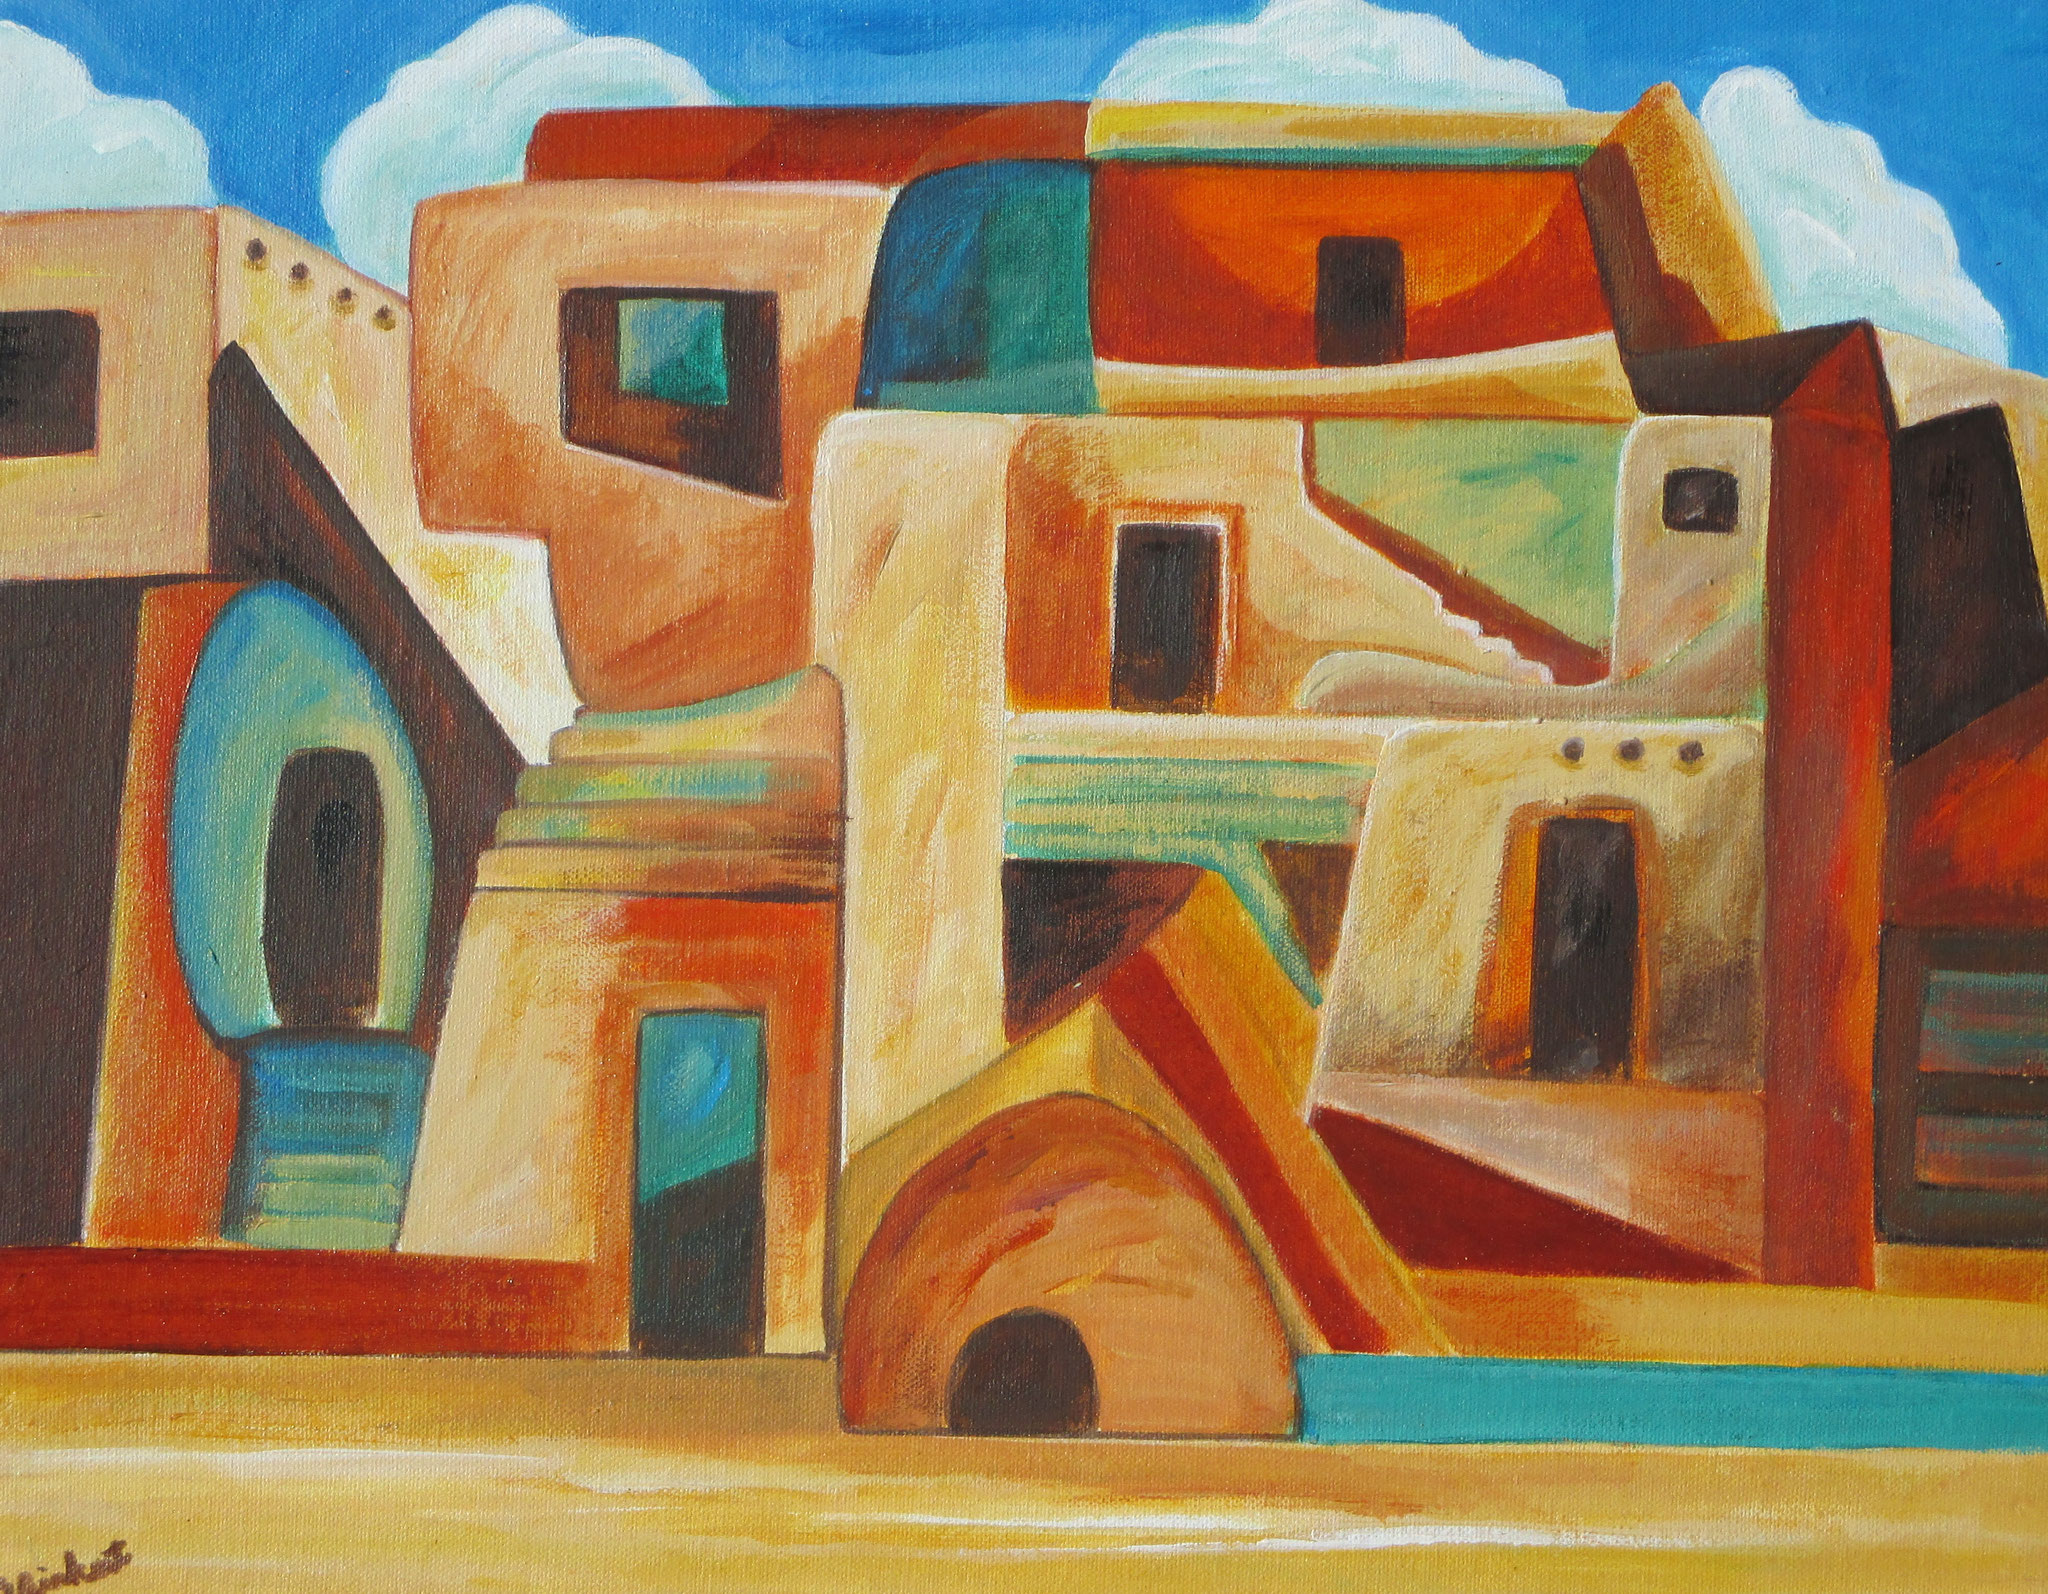 Cliff Dwellings, oil on canvas, 18 x 24